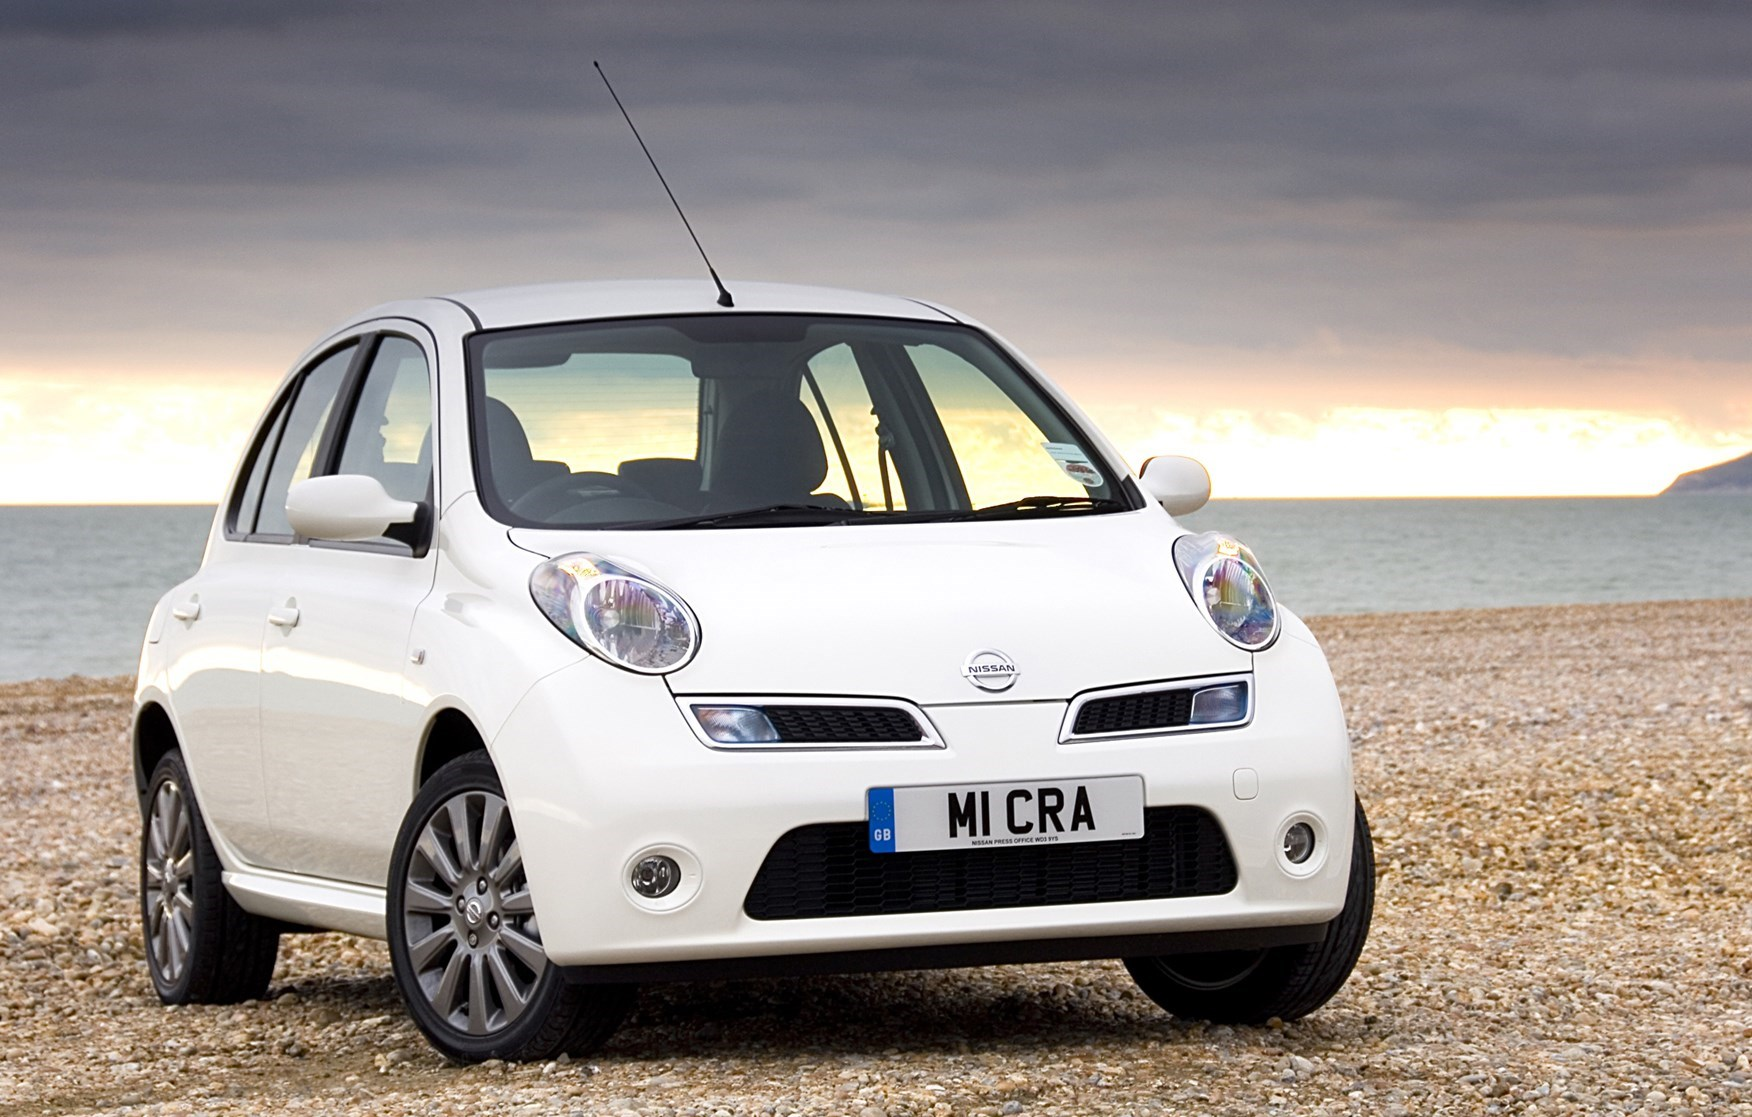 Economical cars for less than £3k | Parkers